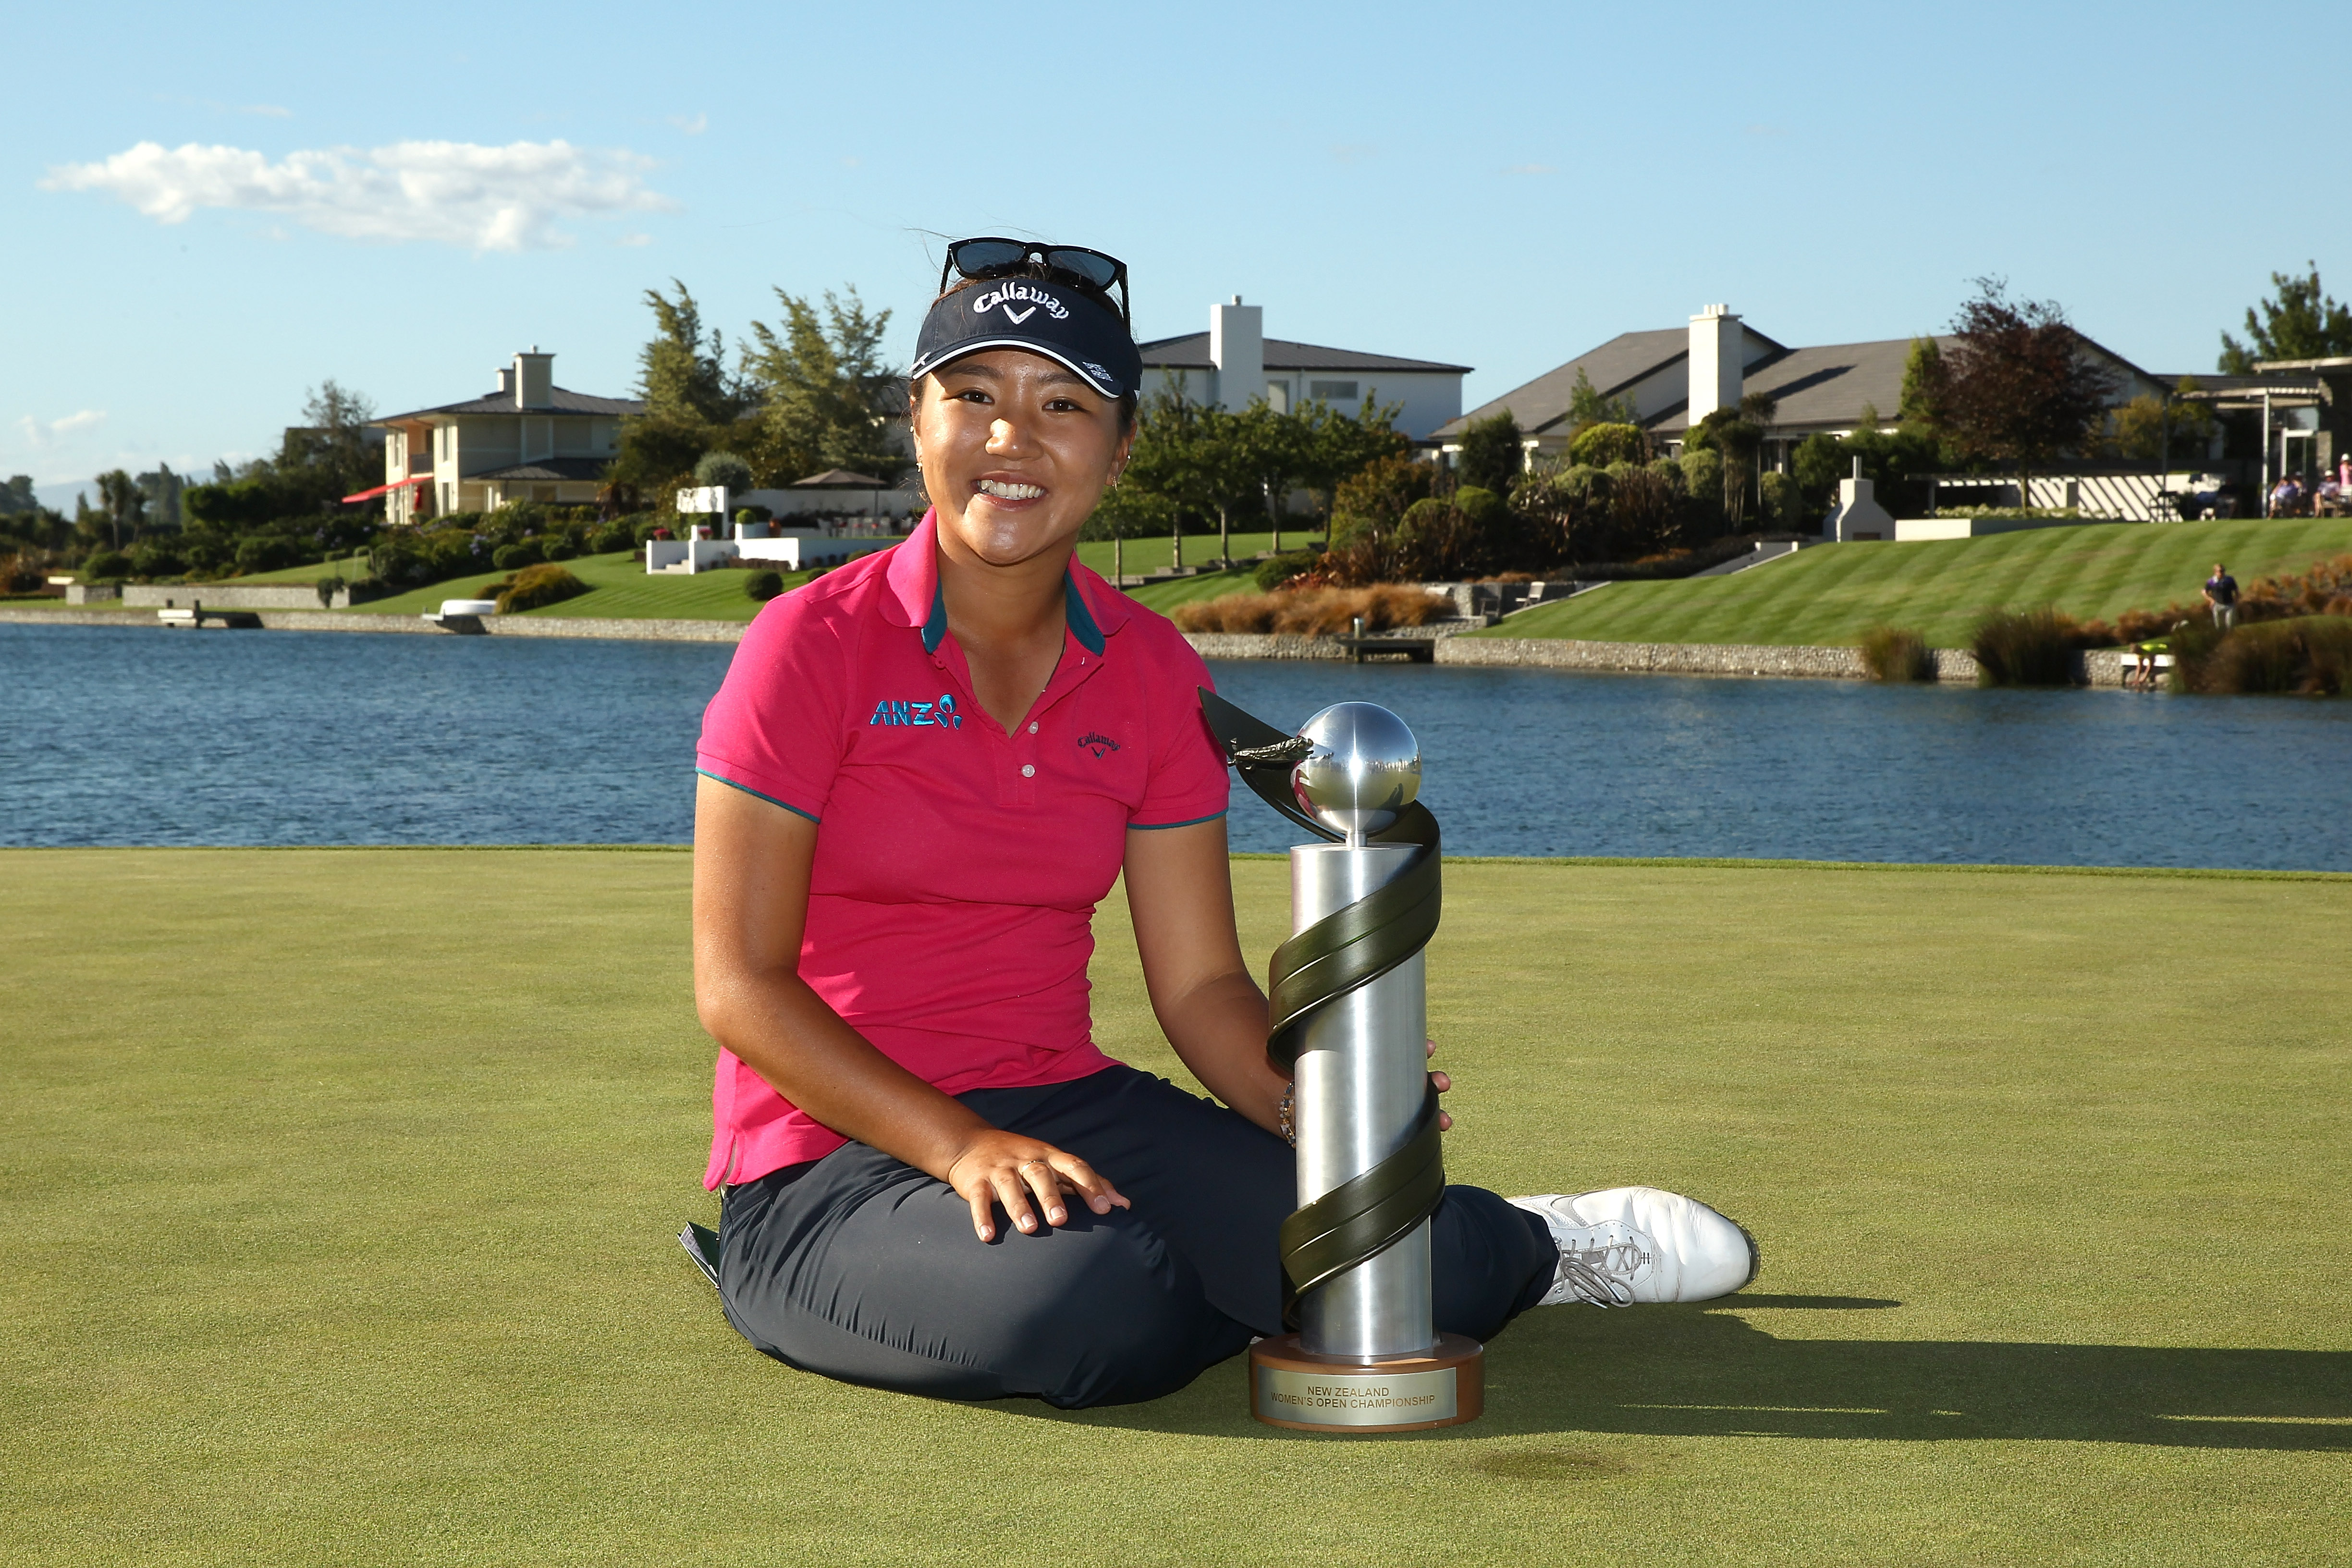 Lydia Ko is the youngest world number one in the history of golf (Photo: Getty Images)